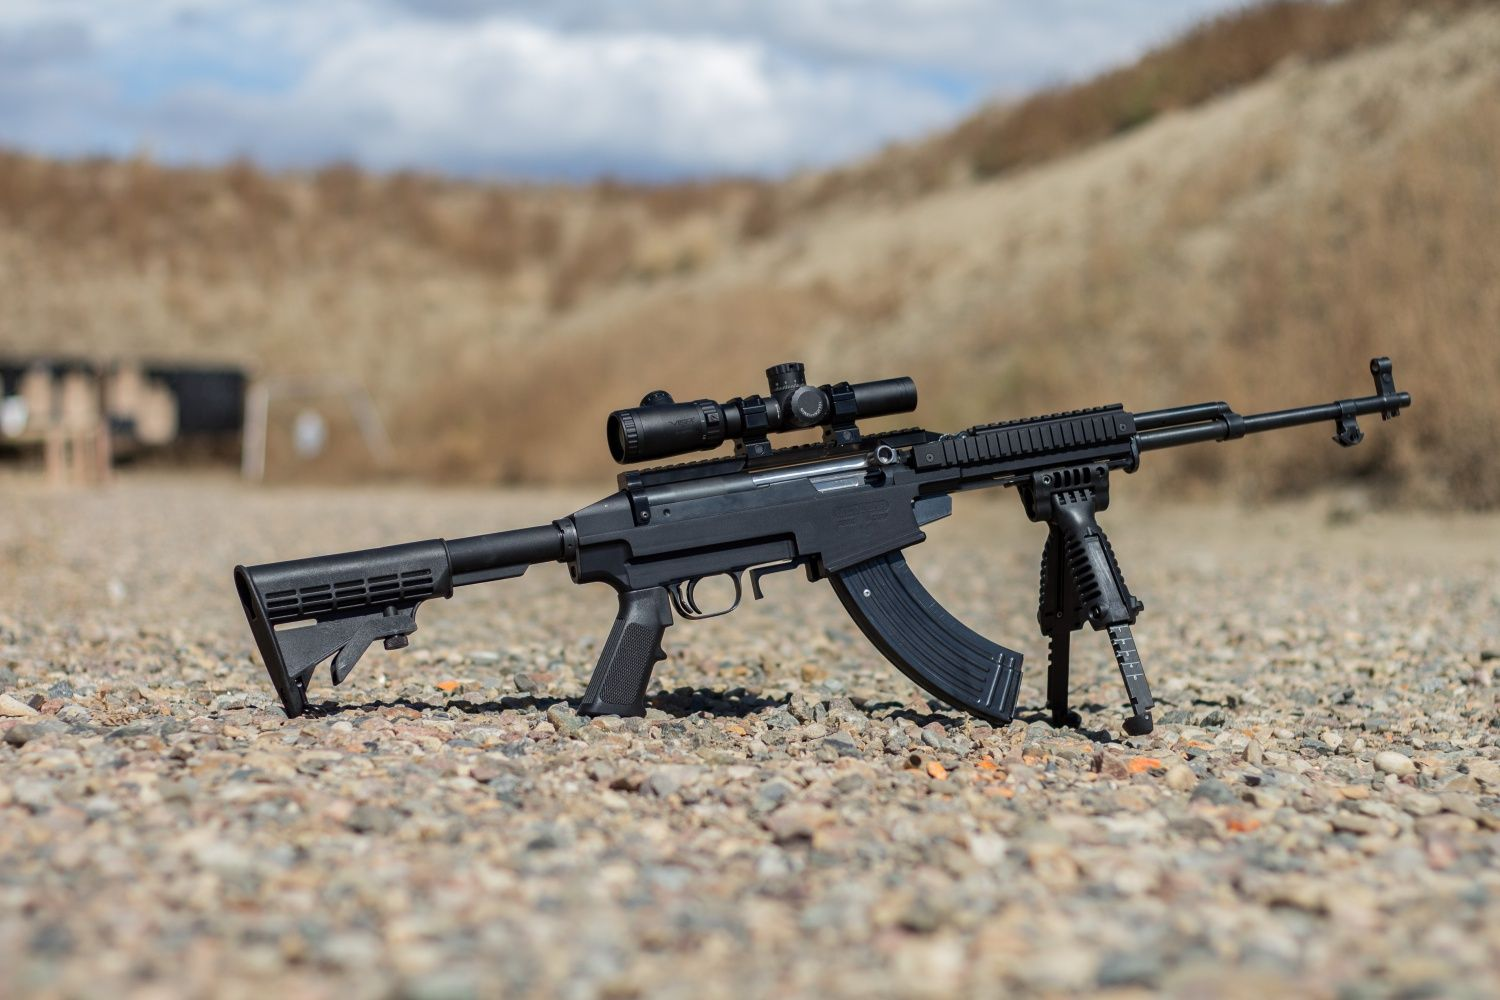 Pin On Firearms And Other Cool Weapons